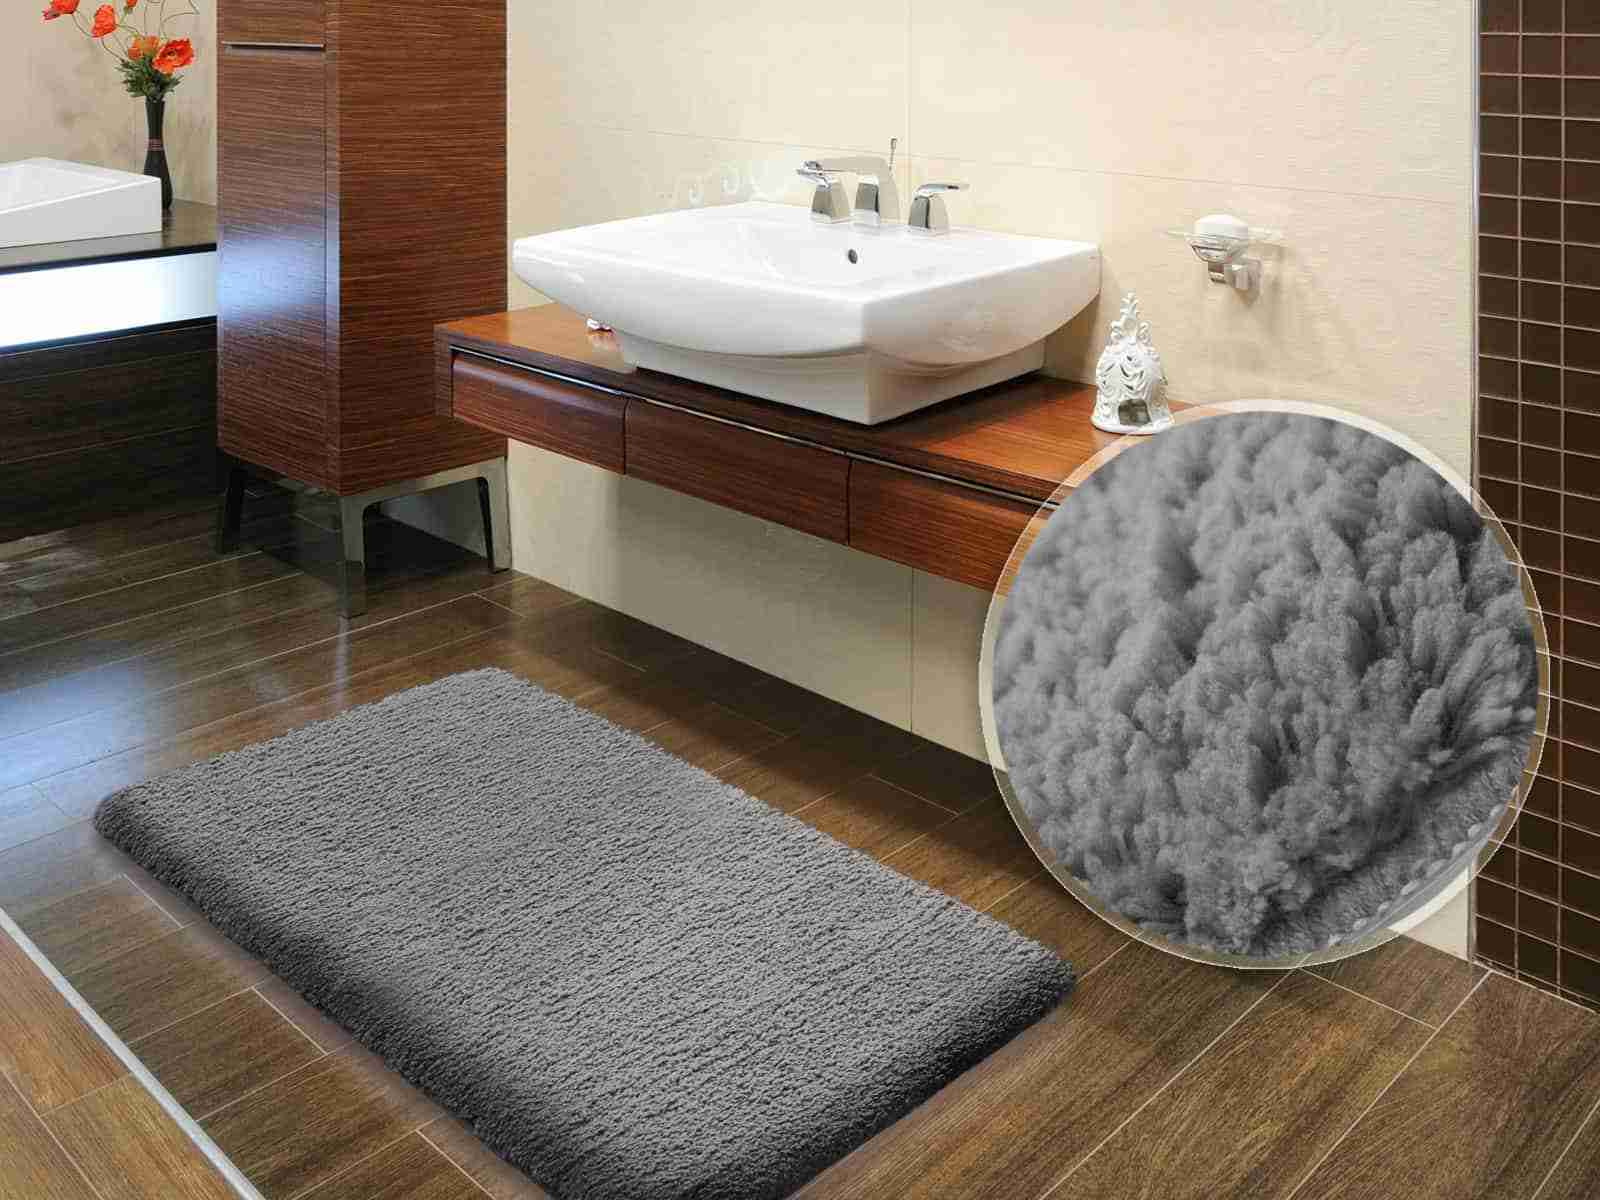 Best bathroom mats